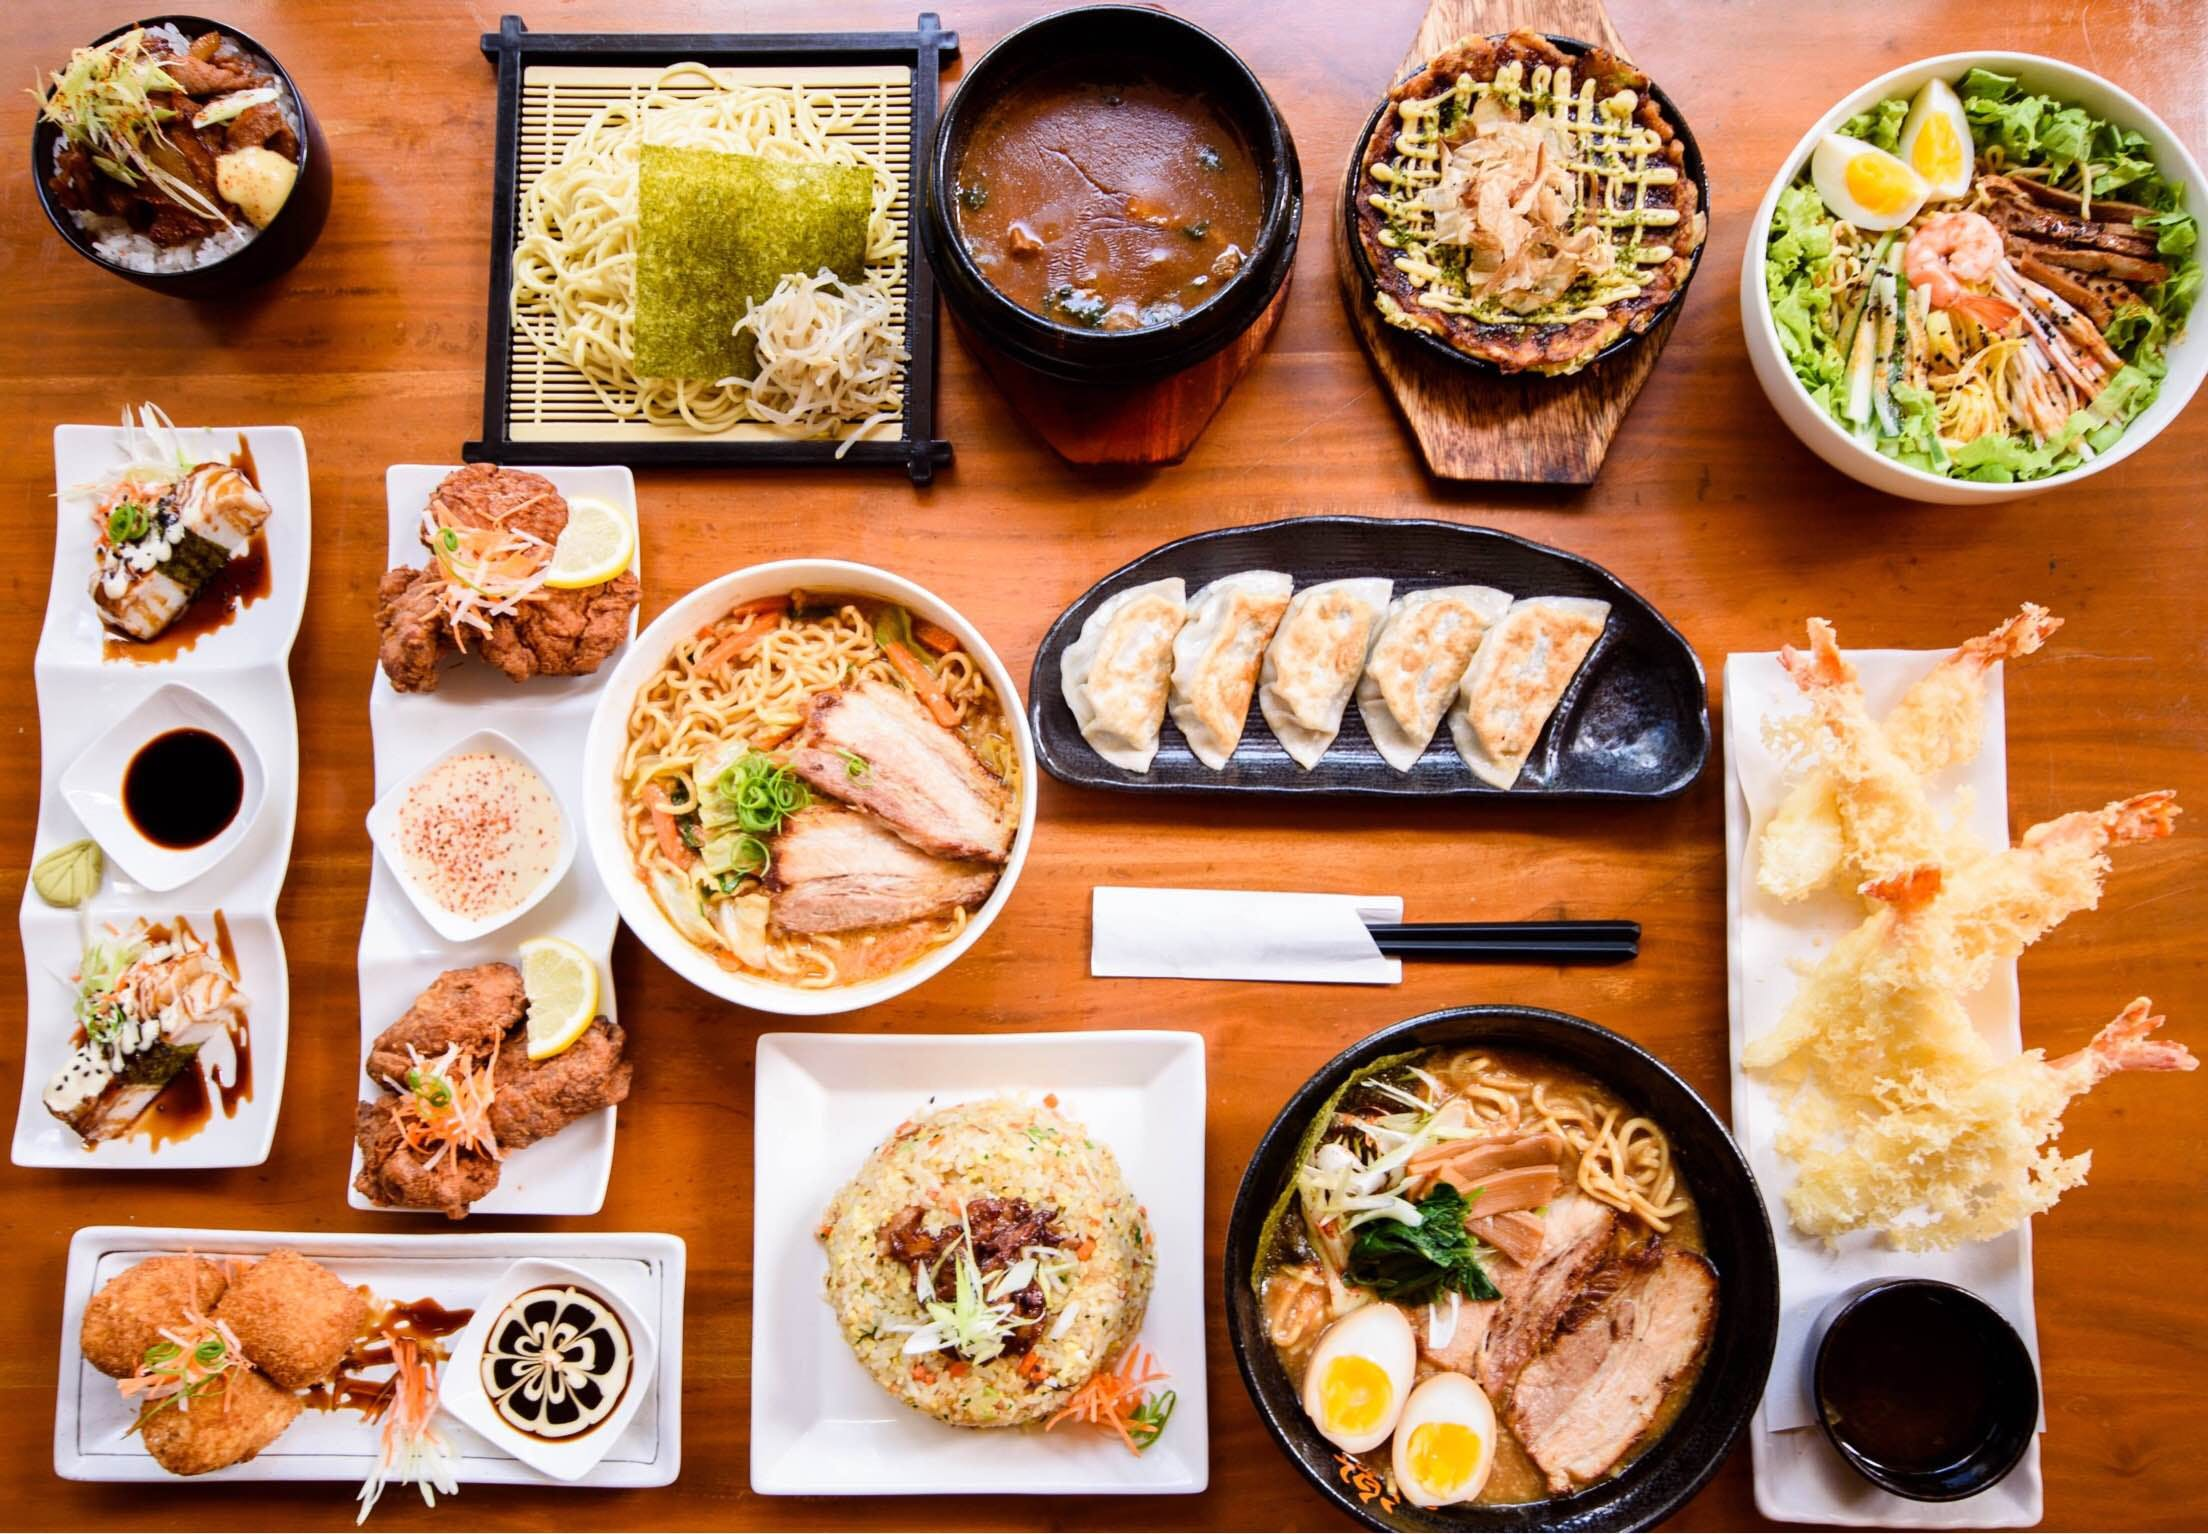 Dish,Cuisine,Meal,Food,Lunch,Comfort food,Brunch,Ingredient,Japanese cuisine,Steamed rice